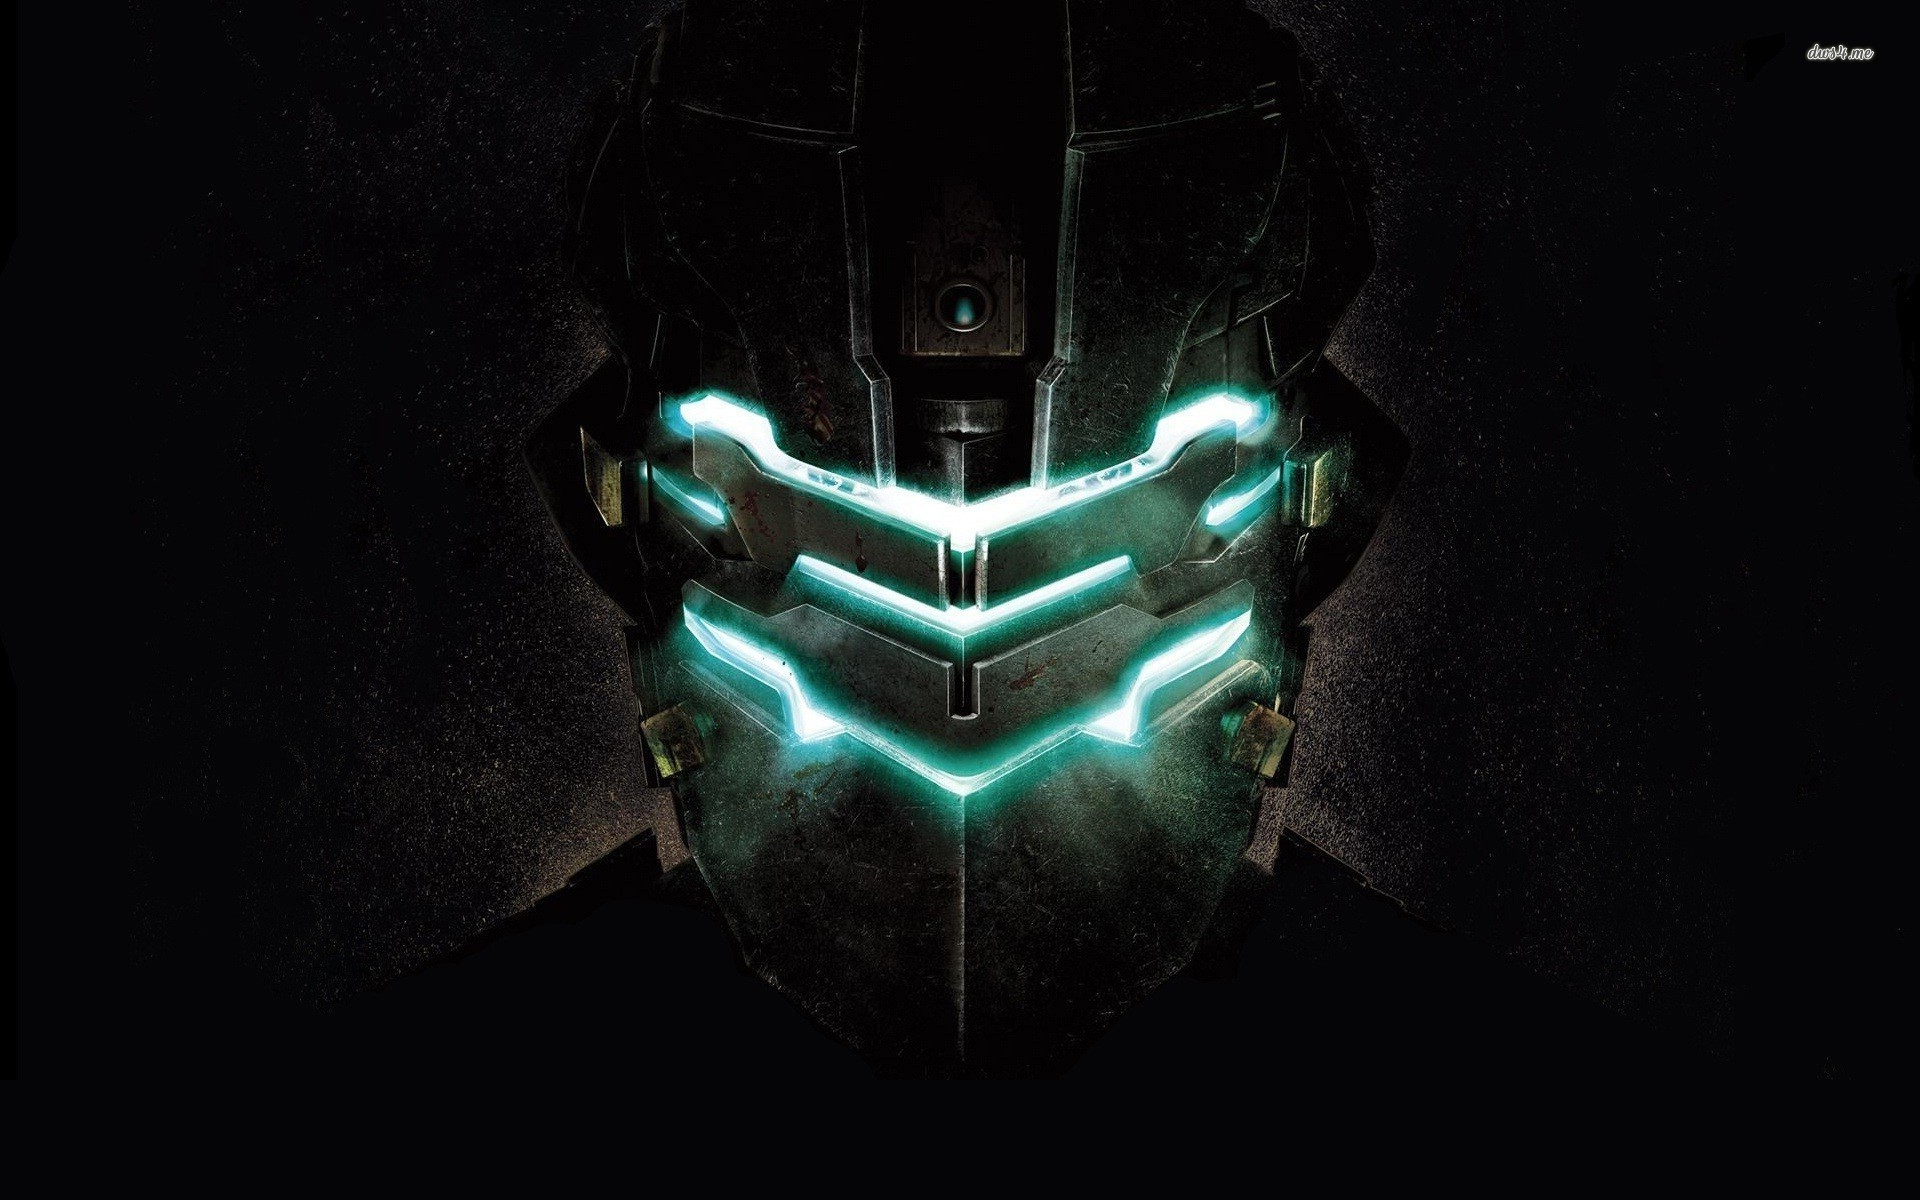 Dead Space 2 wallpaper   Game wallpapers   13100 1920x1200